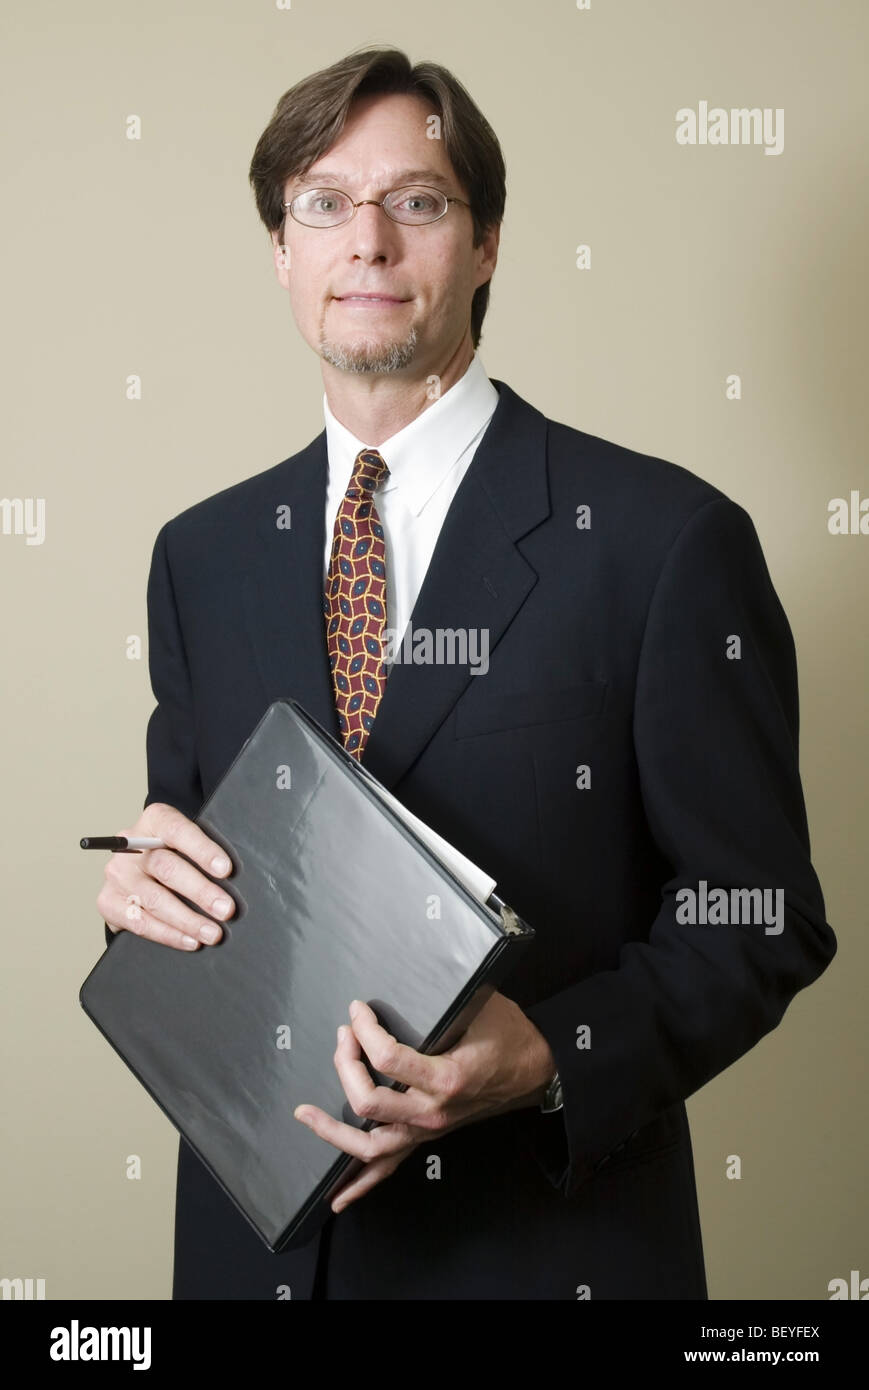 Attorney In Office Setting - Stock Image